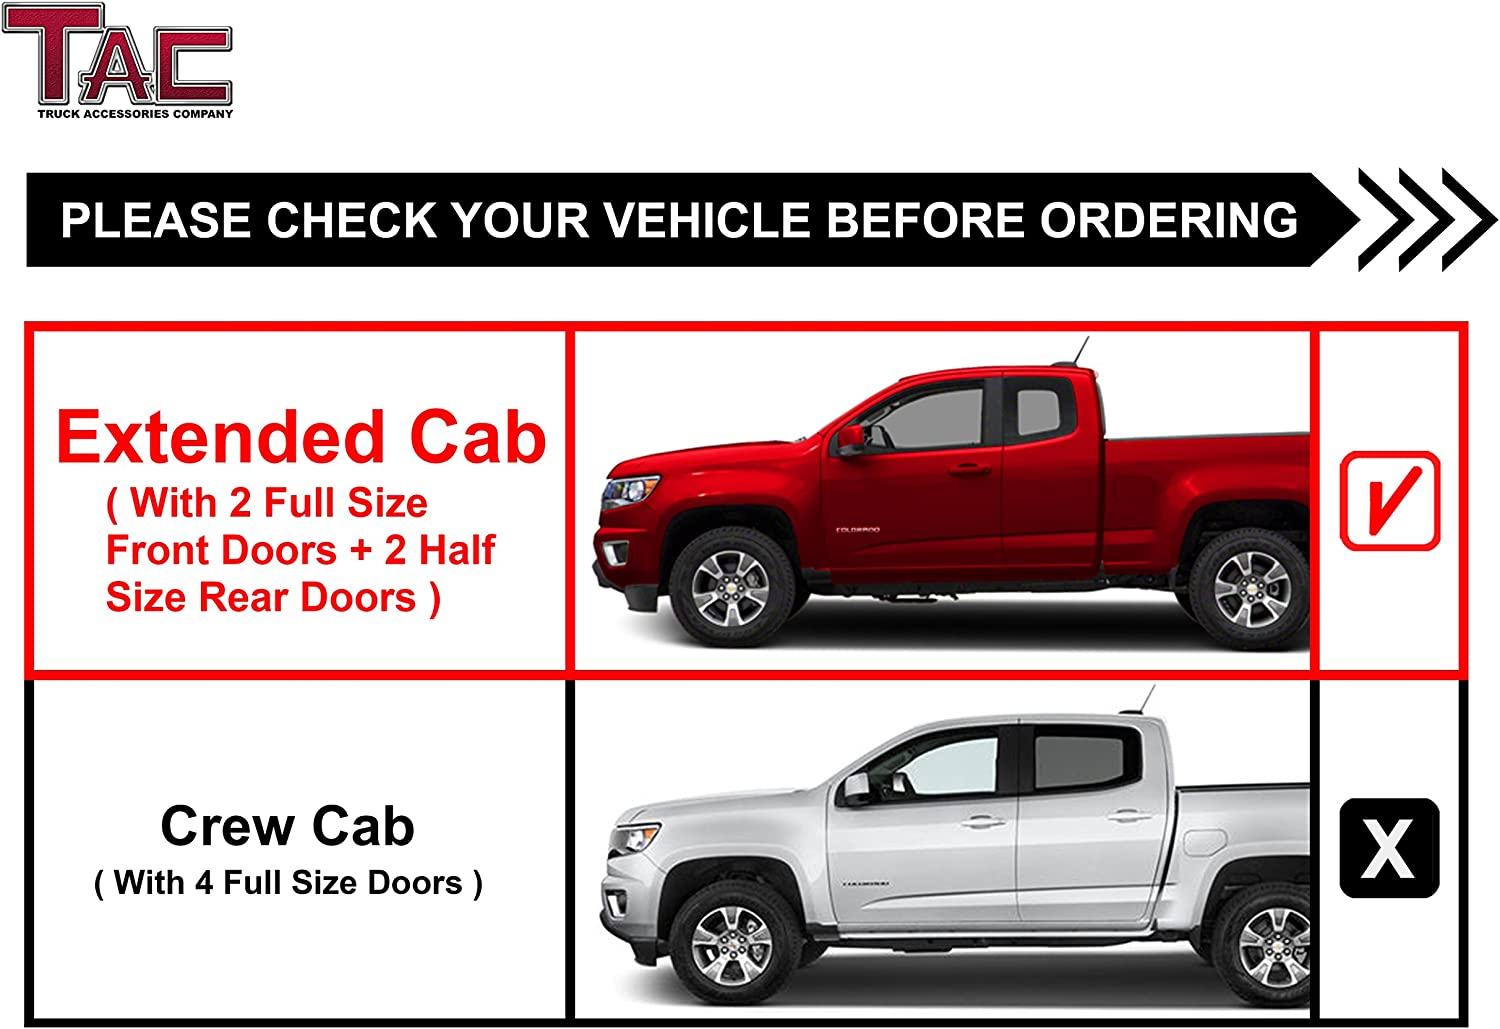 1999-2014 Chevy Silverado//GMC Sierra 2500//3500 Extended Cab Truck Pickup Oval Bend Black PNC Nerf Bars Running Boards TAC 4.25 Side Steps Fit 1999-2013 Chevy Silverado//GMC Sierra 1500 Extended Cab